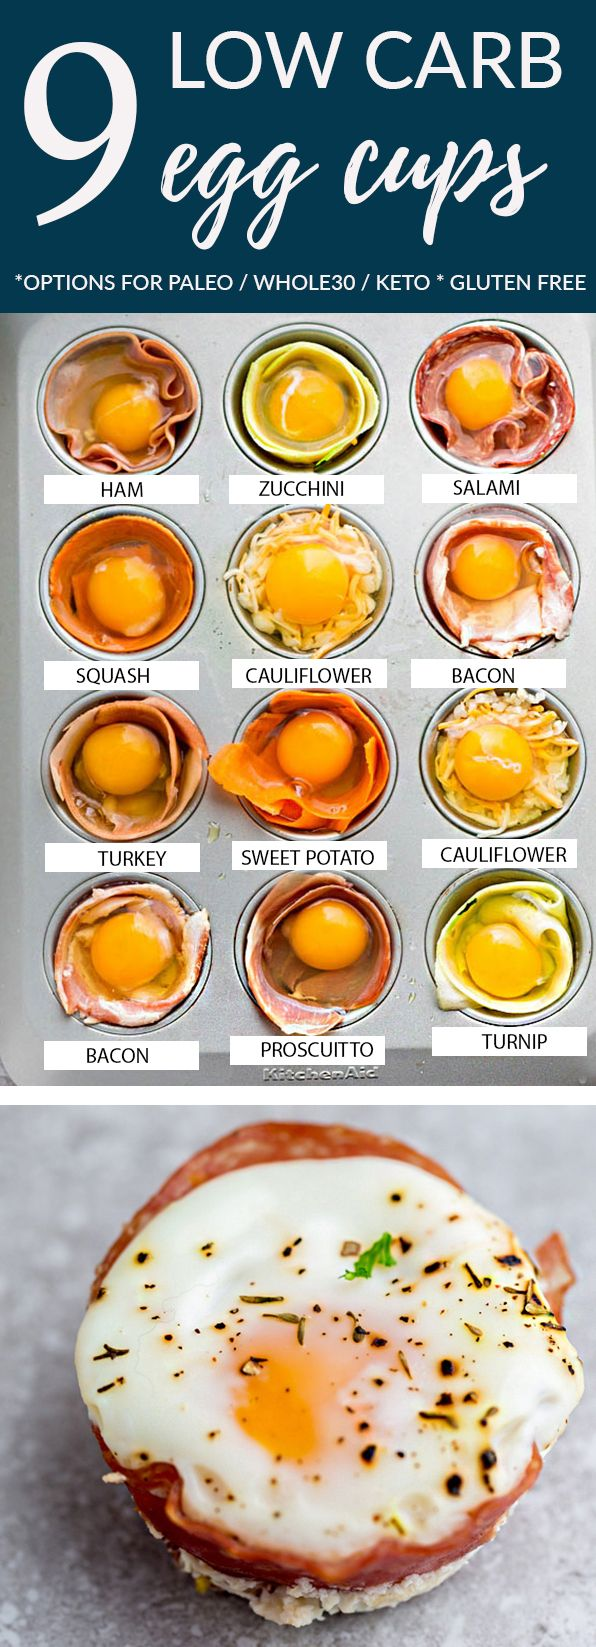 Baked Egg Cups 9 Different Ways Are The Perfect Low Carb